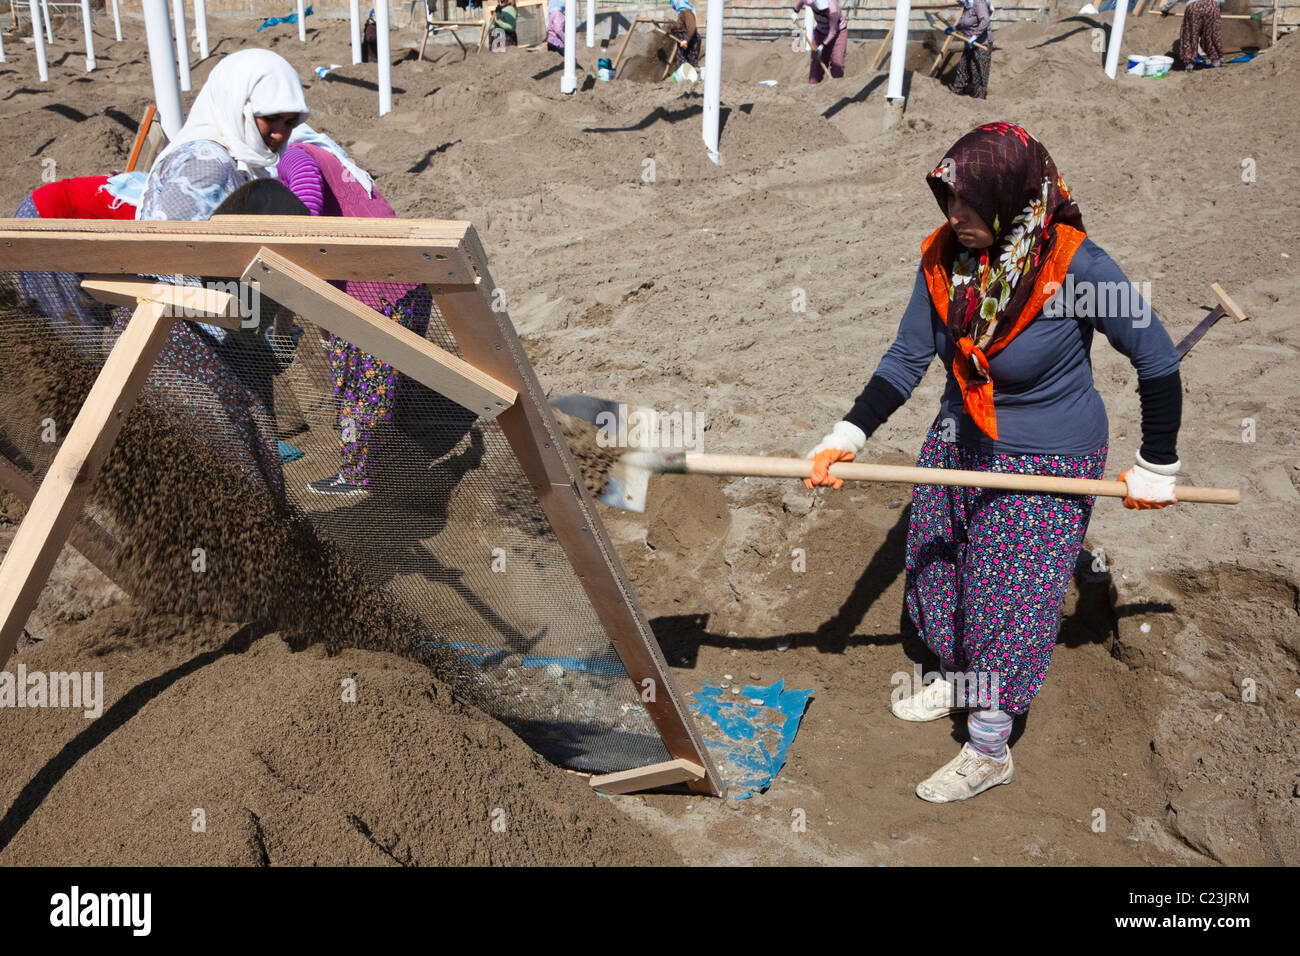 Turkish women working on the beach at Belek,Turkey, cleaning the sand of all stones, by sifting the sand through - Stock Image